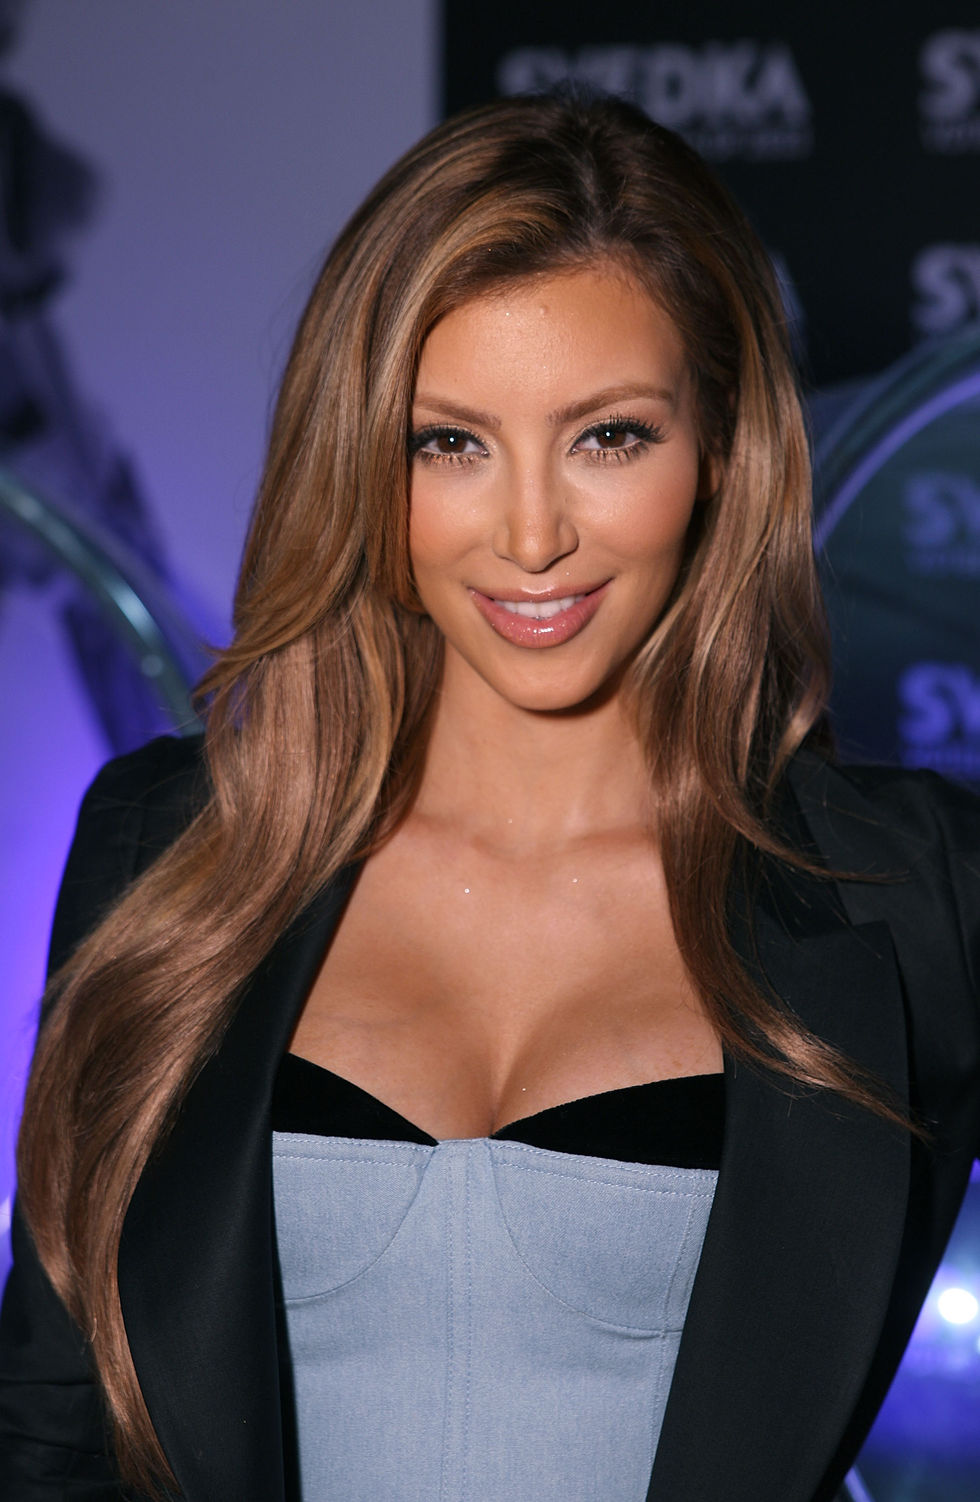 kim-kardashian-at-brent-bolthouse-photography-exibit-in-los-angeles-01